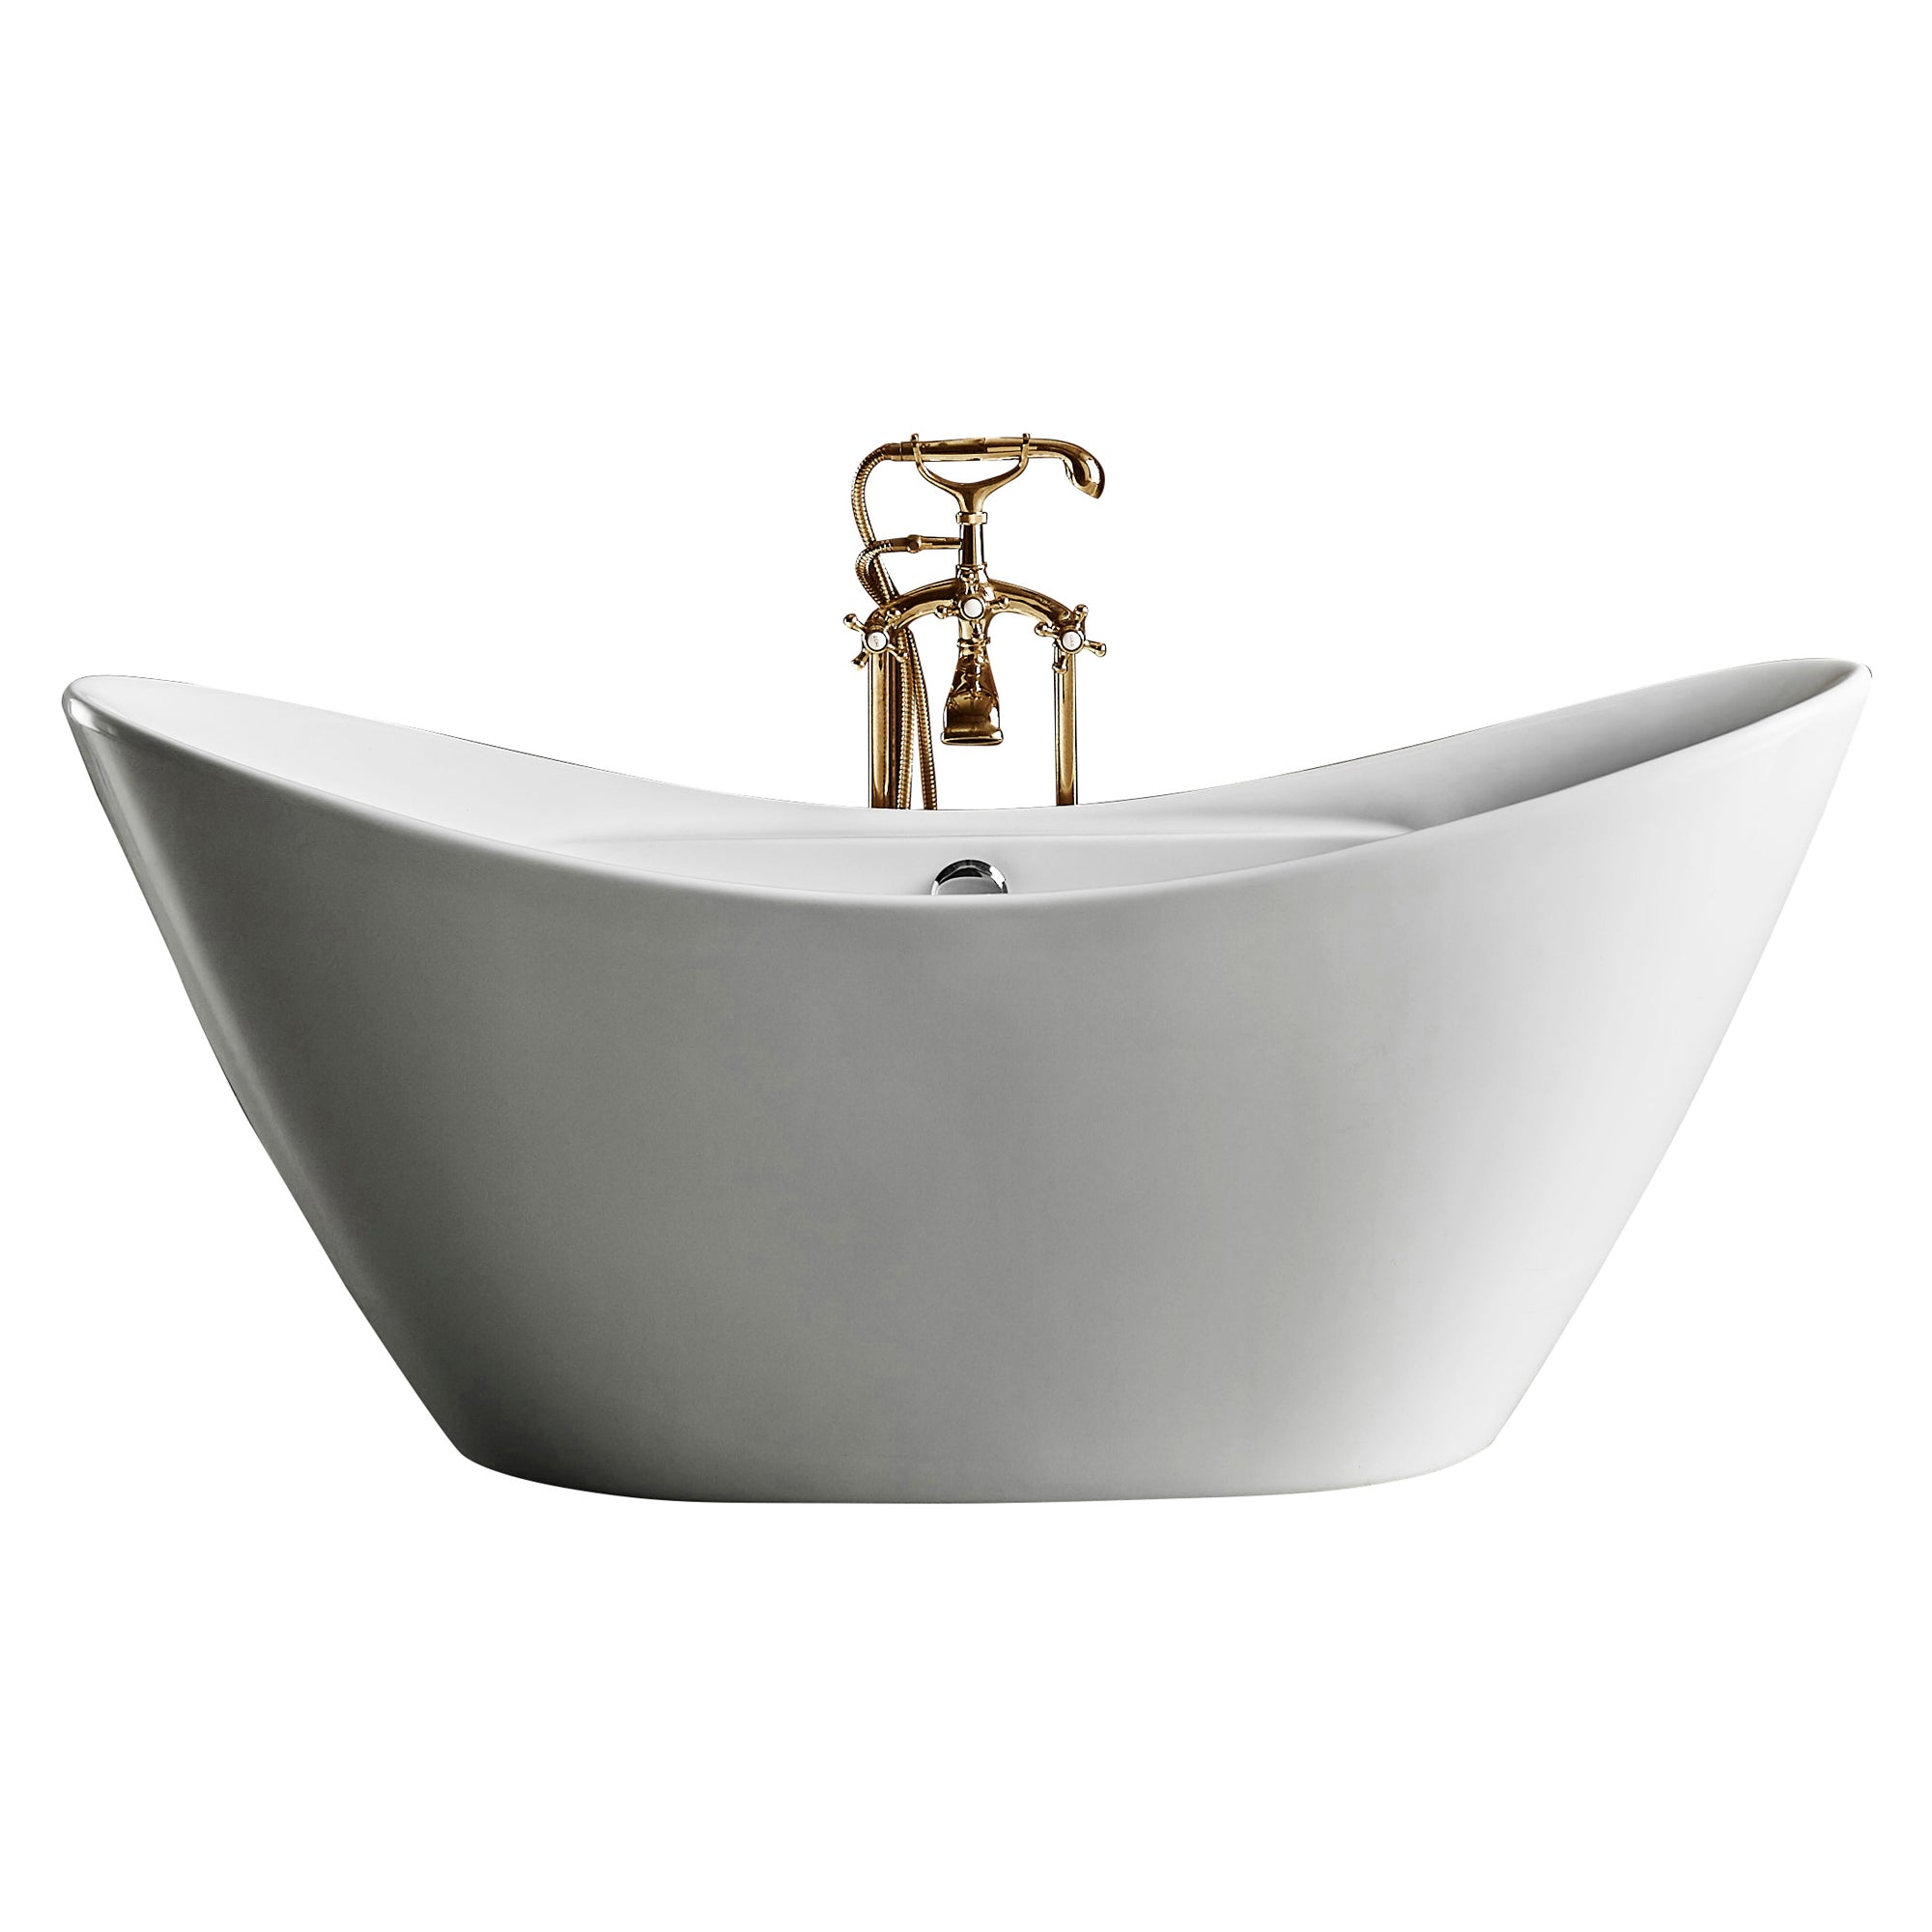 Freestanding Bathtub, 100% Pure Acrylic Soaking Tub with Brush ...